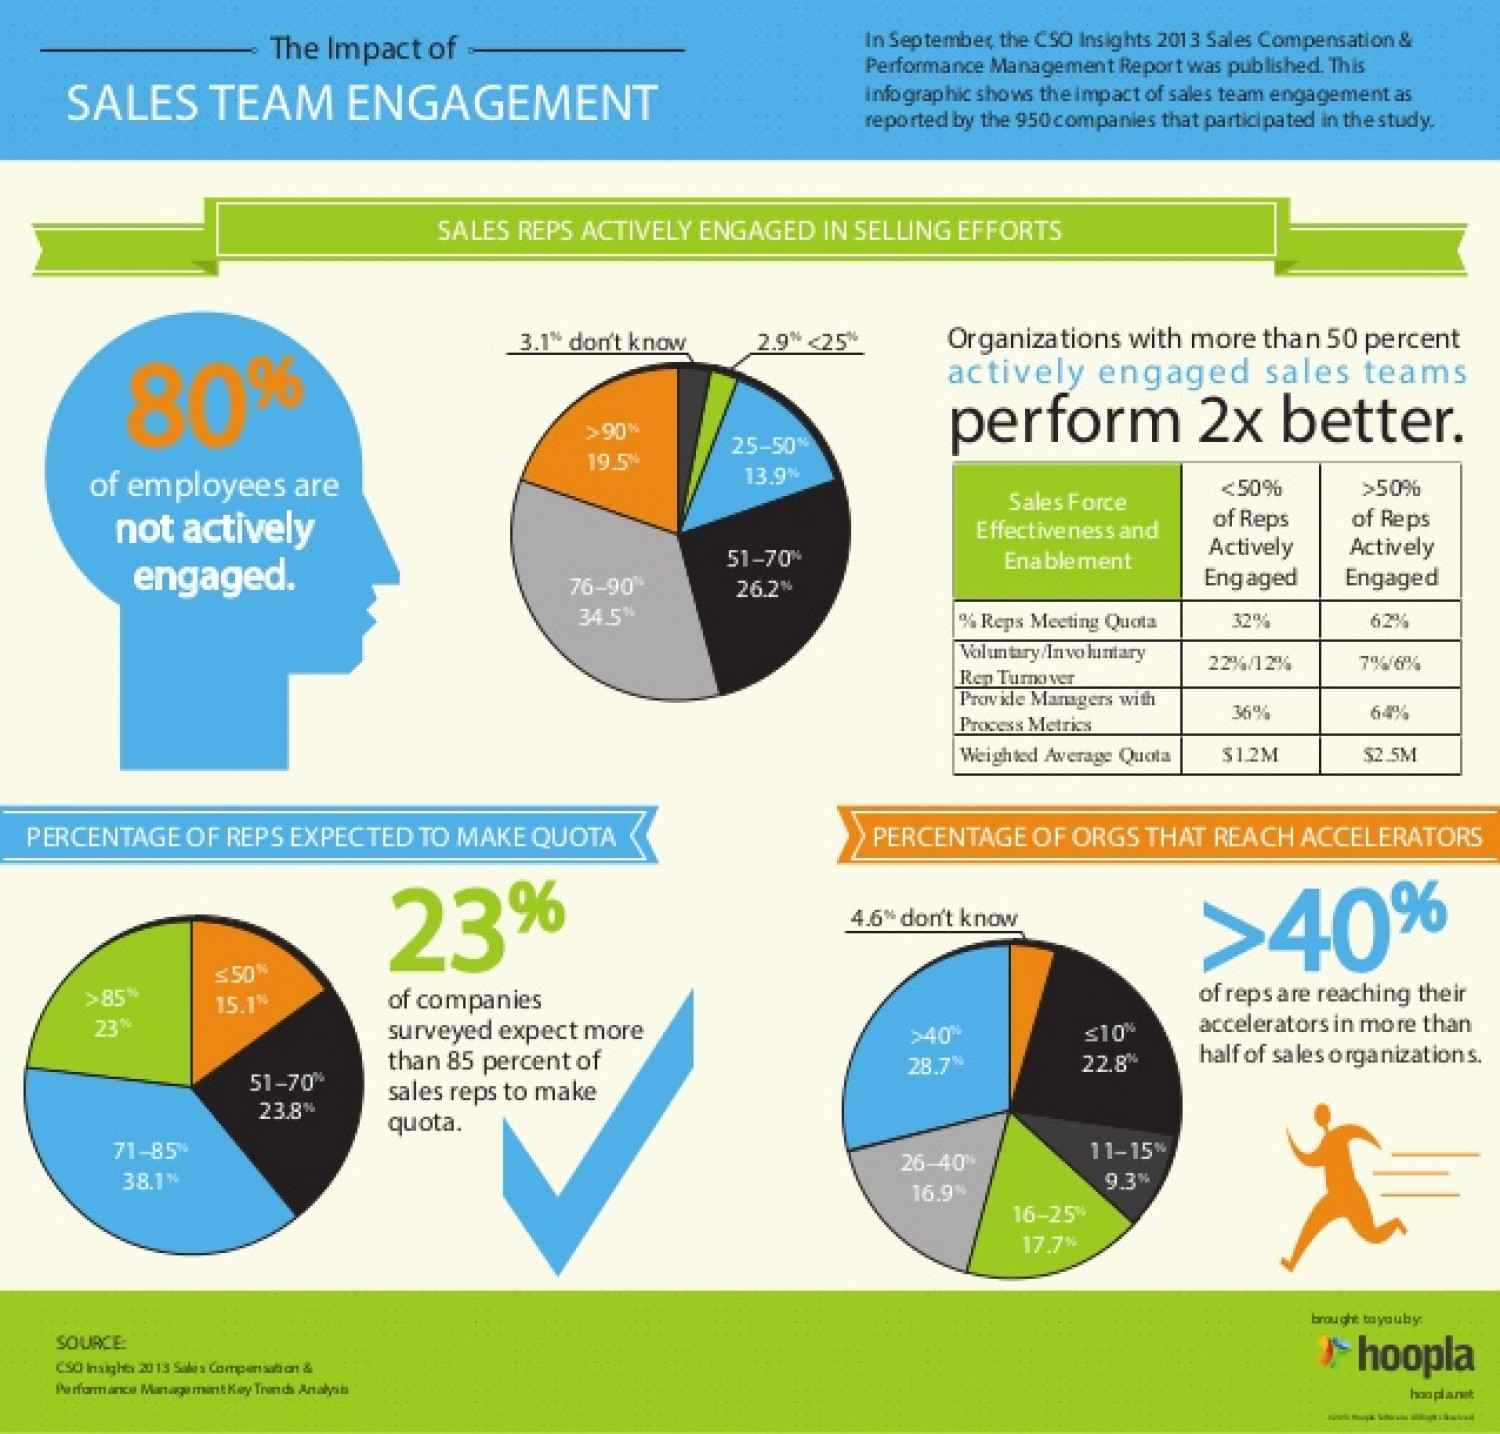 The Impact of Sales Team Engagement Infographic